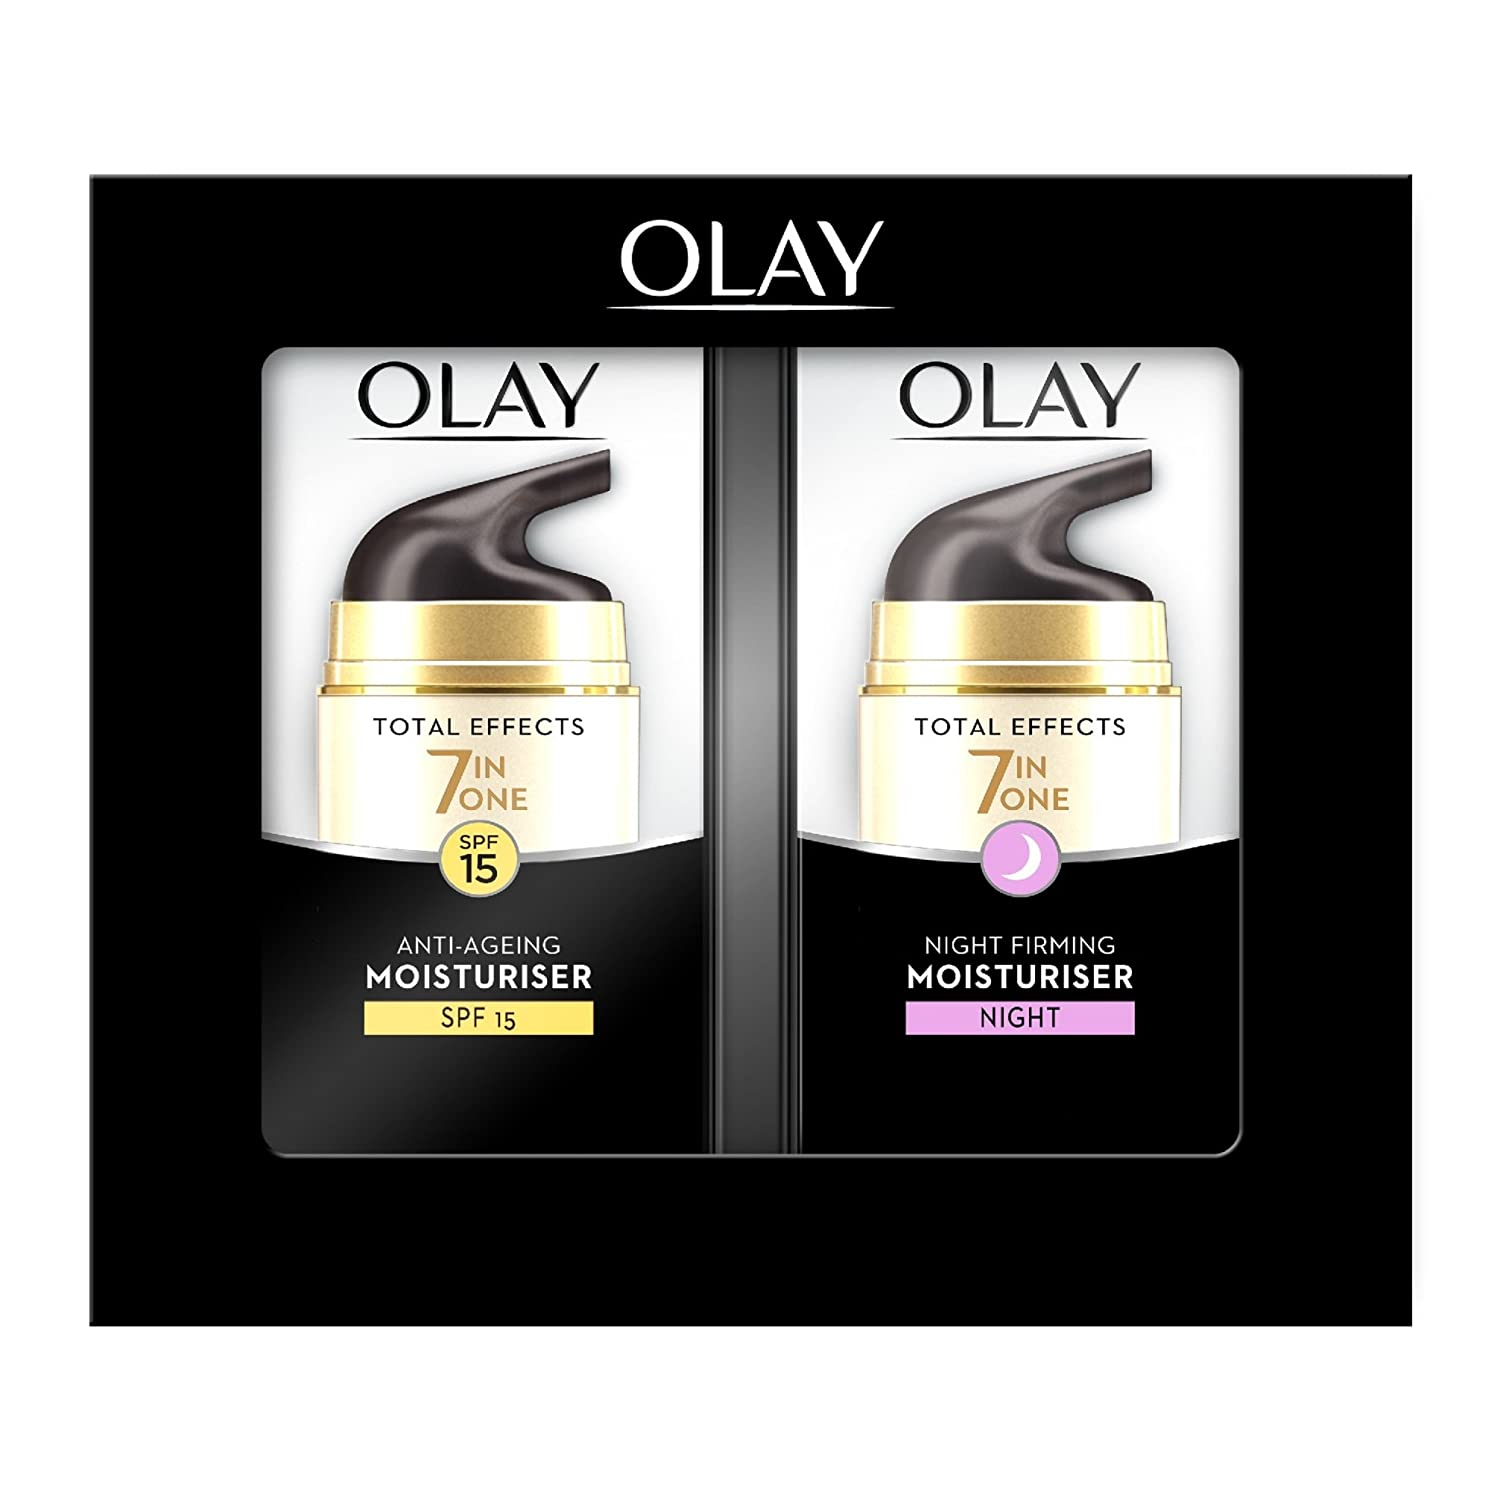 Olay Total Effects Anti-Ageing 7-in-1 Gift Set: Day Cream Moisturiser, 37 ml with Night Cream Firming Moisturiser, 37 ml Procter & Gamble OLA0491A